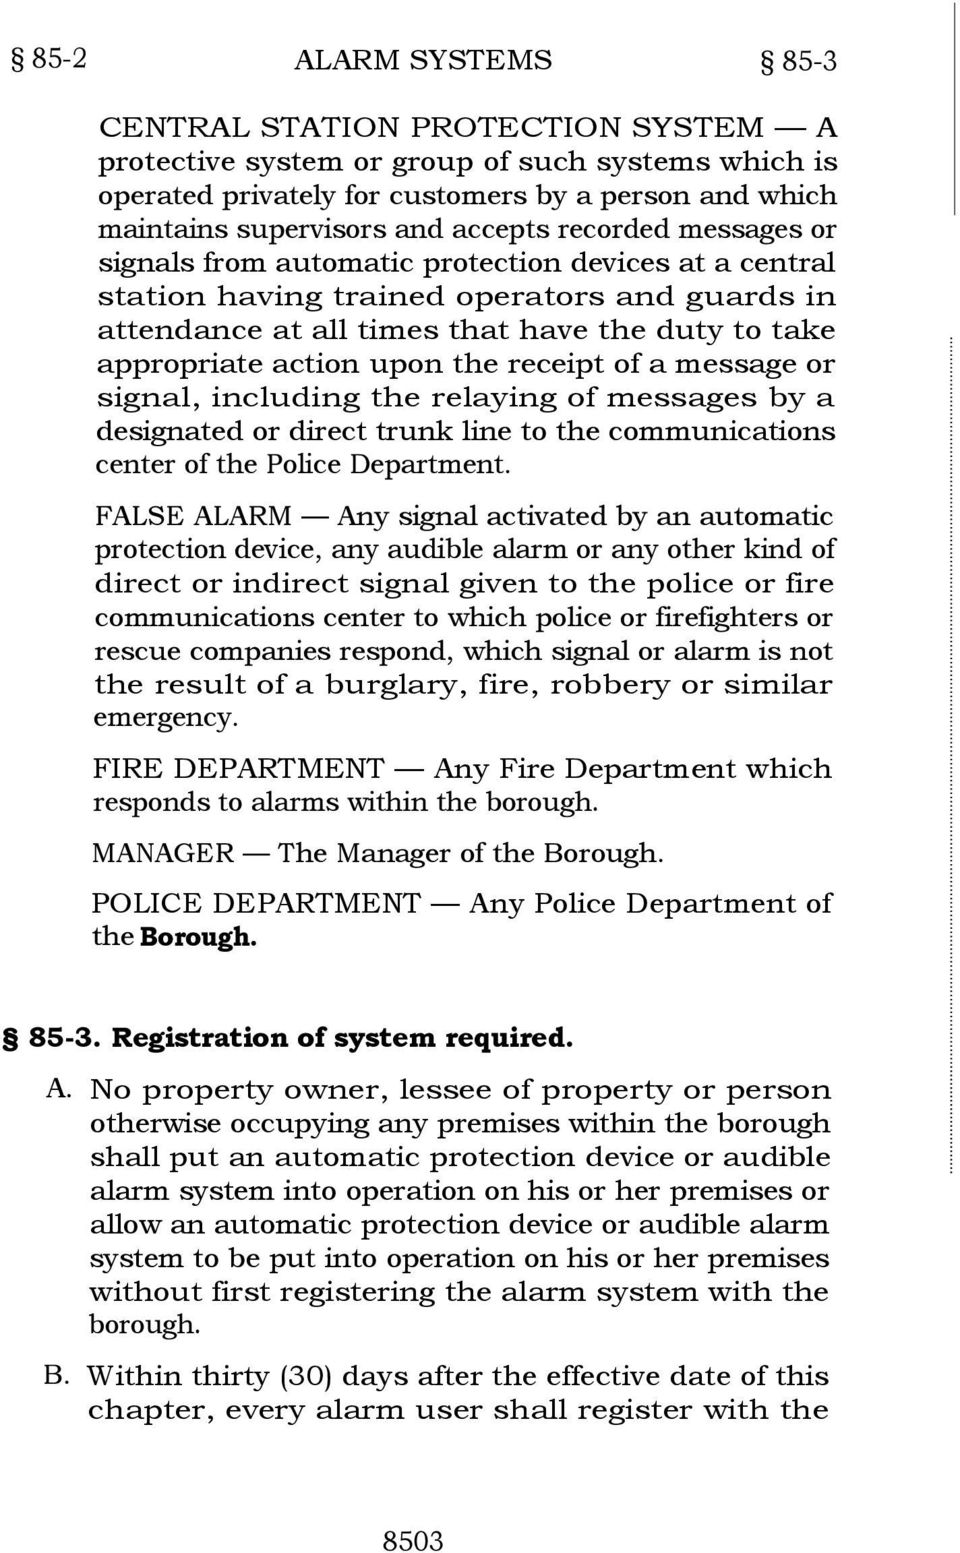 action upon the receipt of a message or signal, including the relaying of messages by a designated or direct trunk line to the communications center of the Police Department.